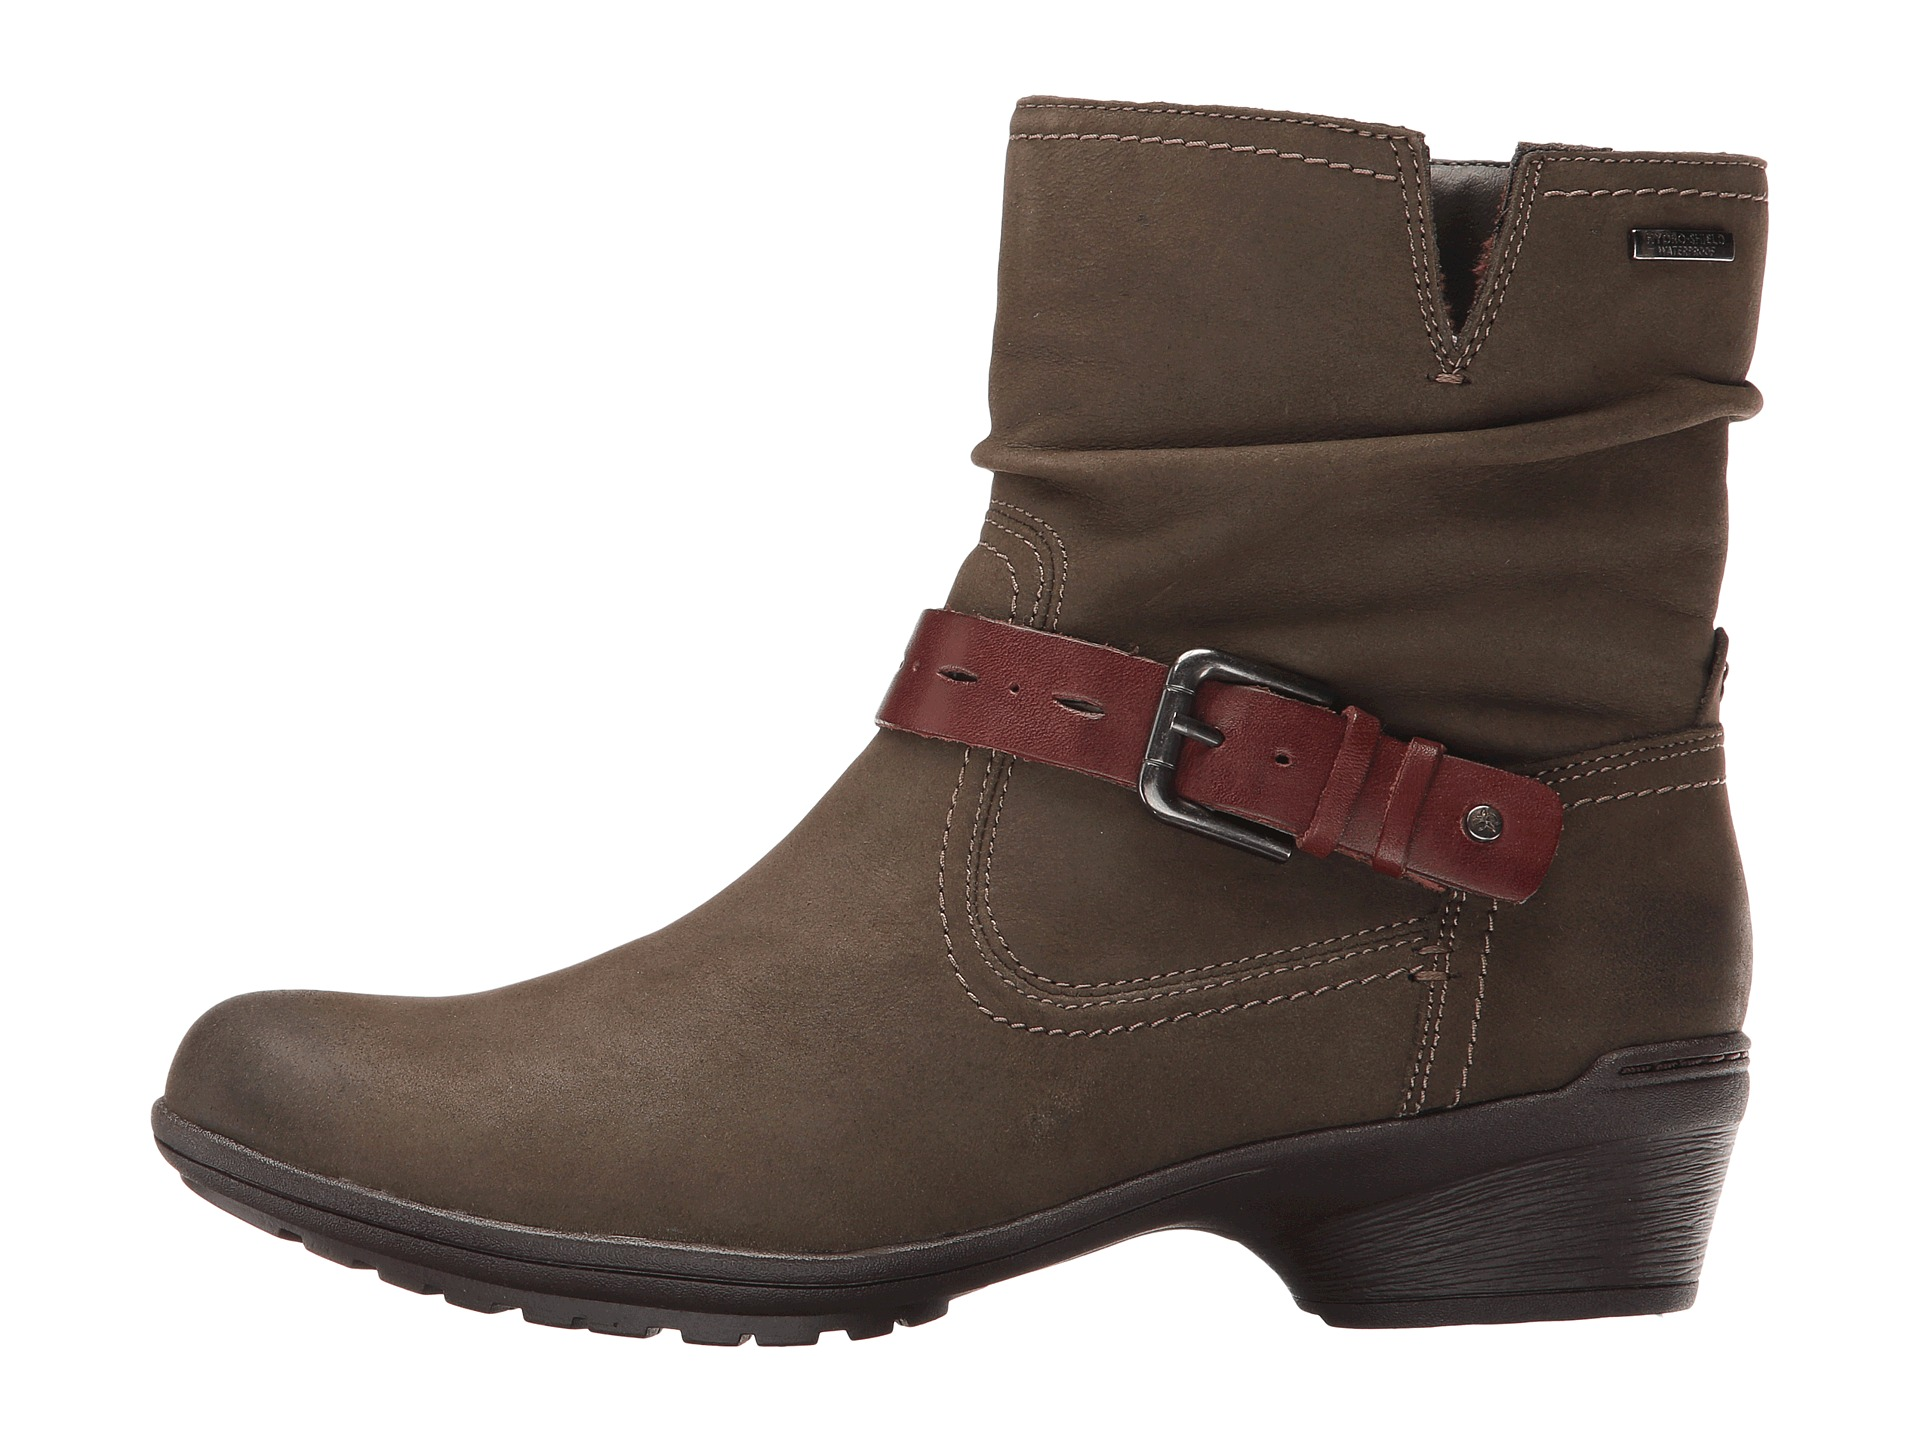 Rockport Cobb Hill Collection Cobb Hill Riley At Zappos Com